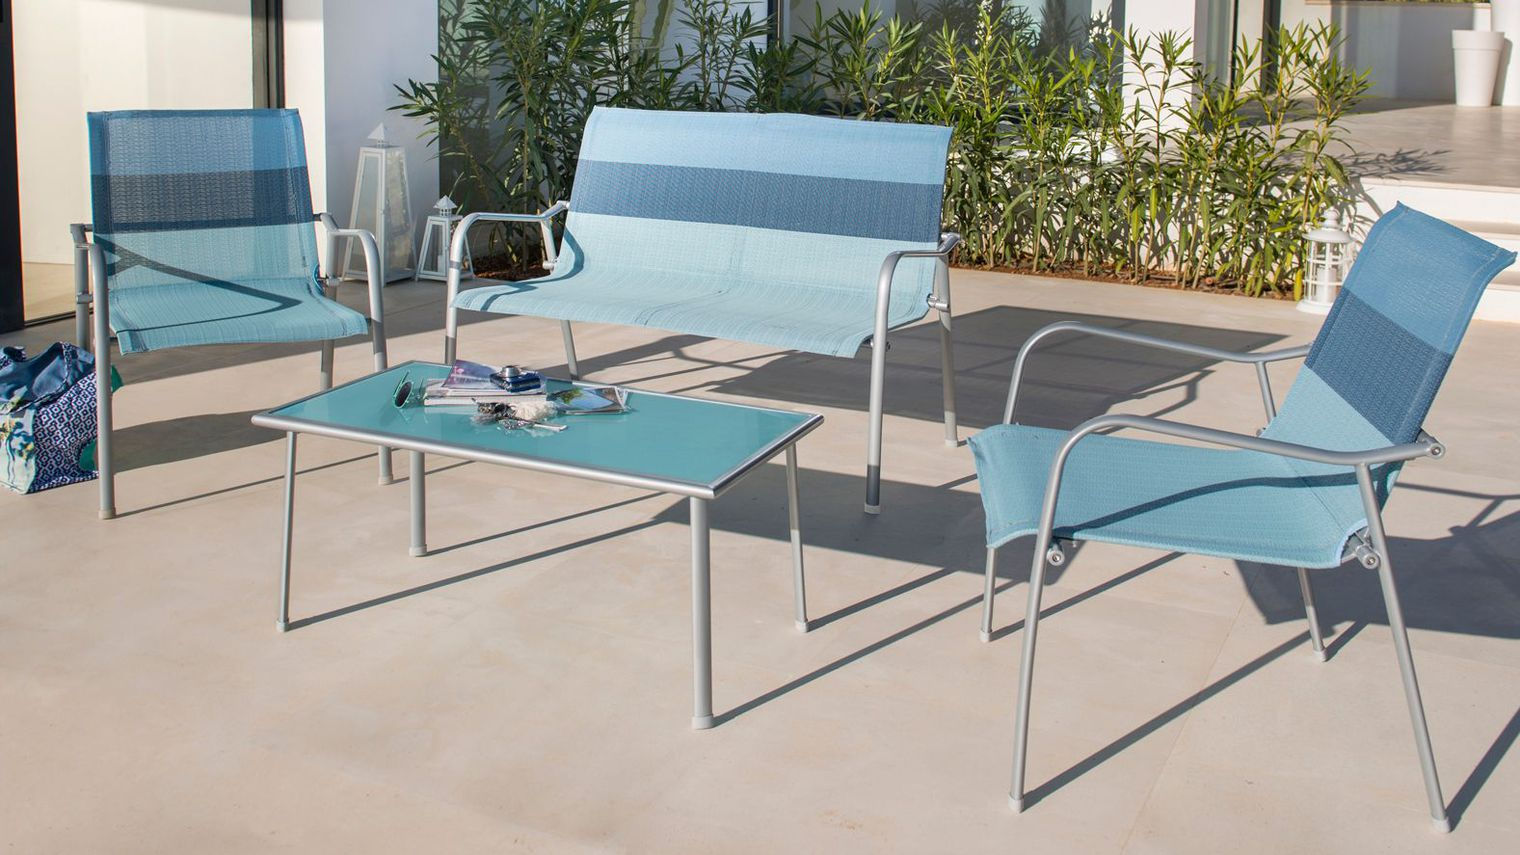 table basse salon de jardin pas cher mobilier design d coration d 39 int rieur